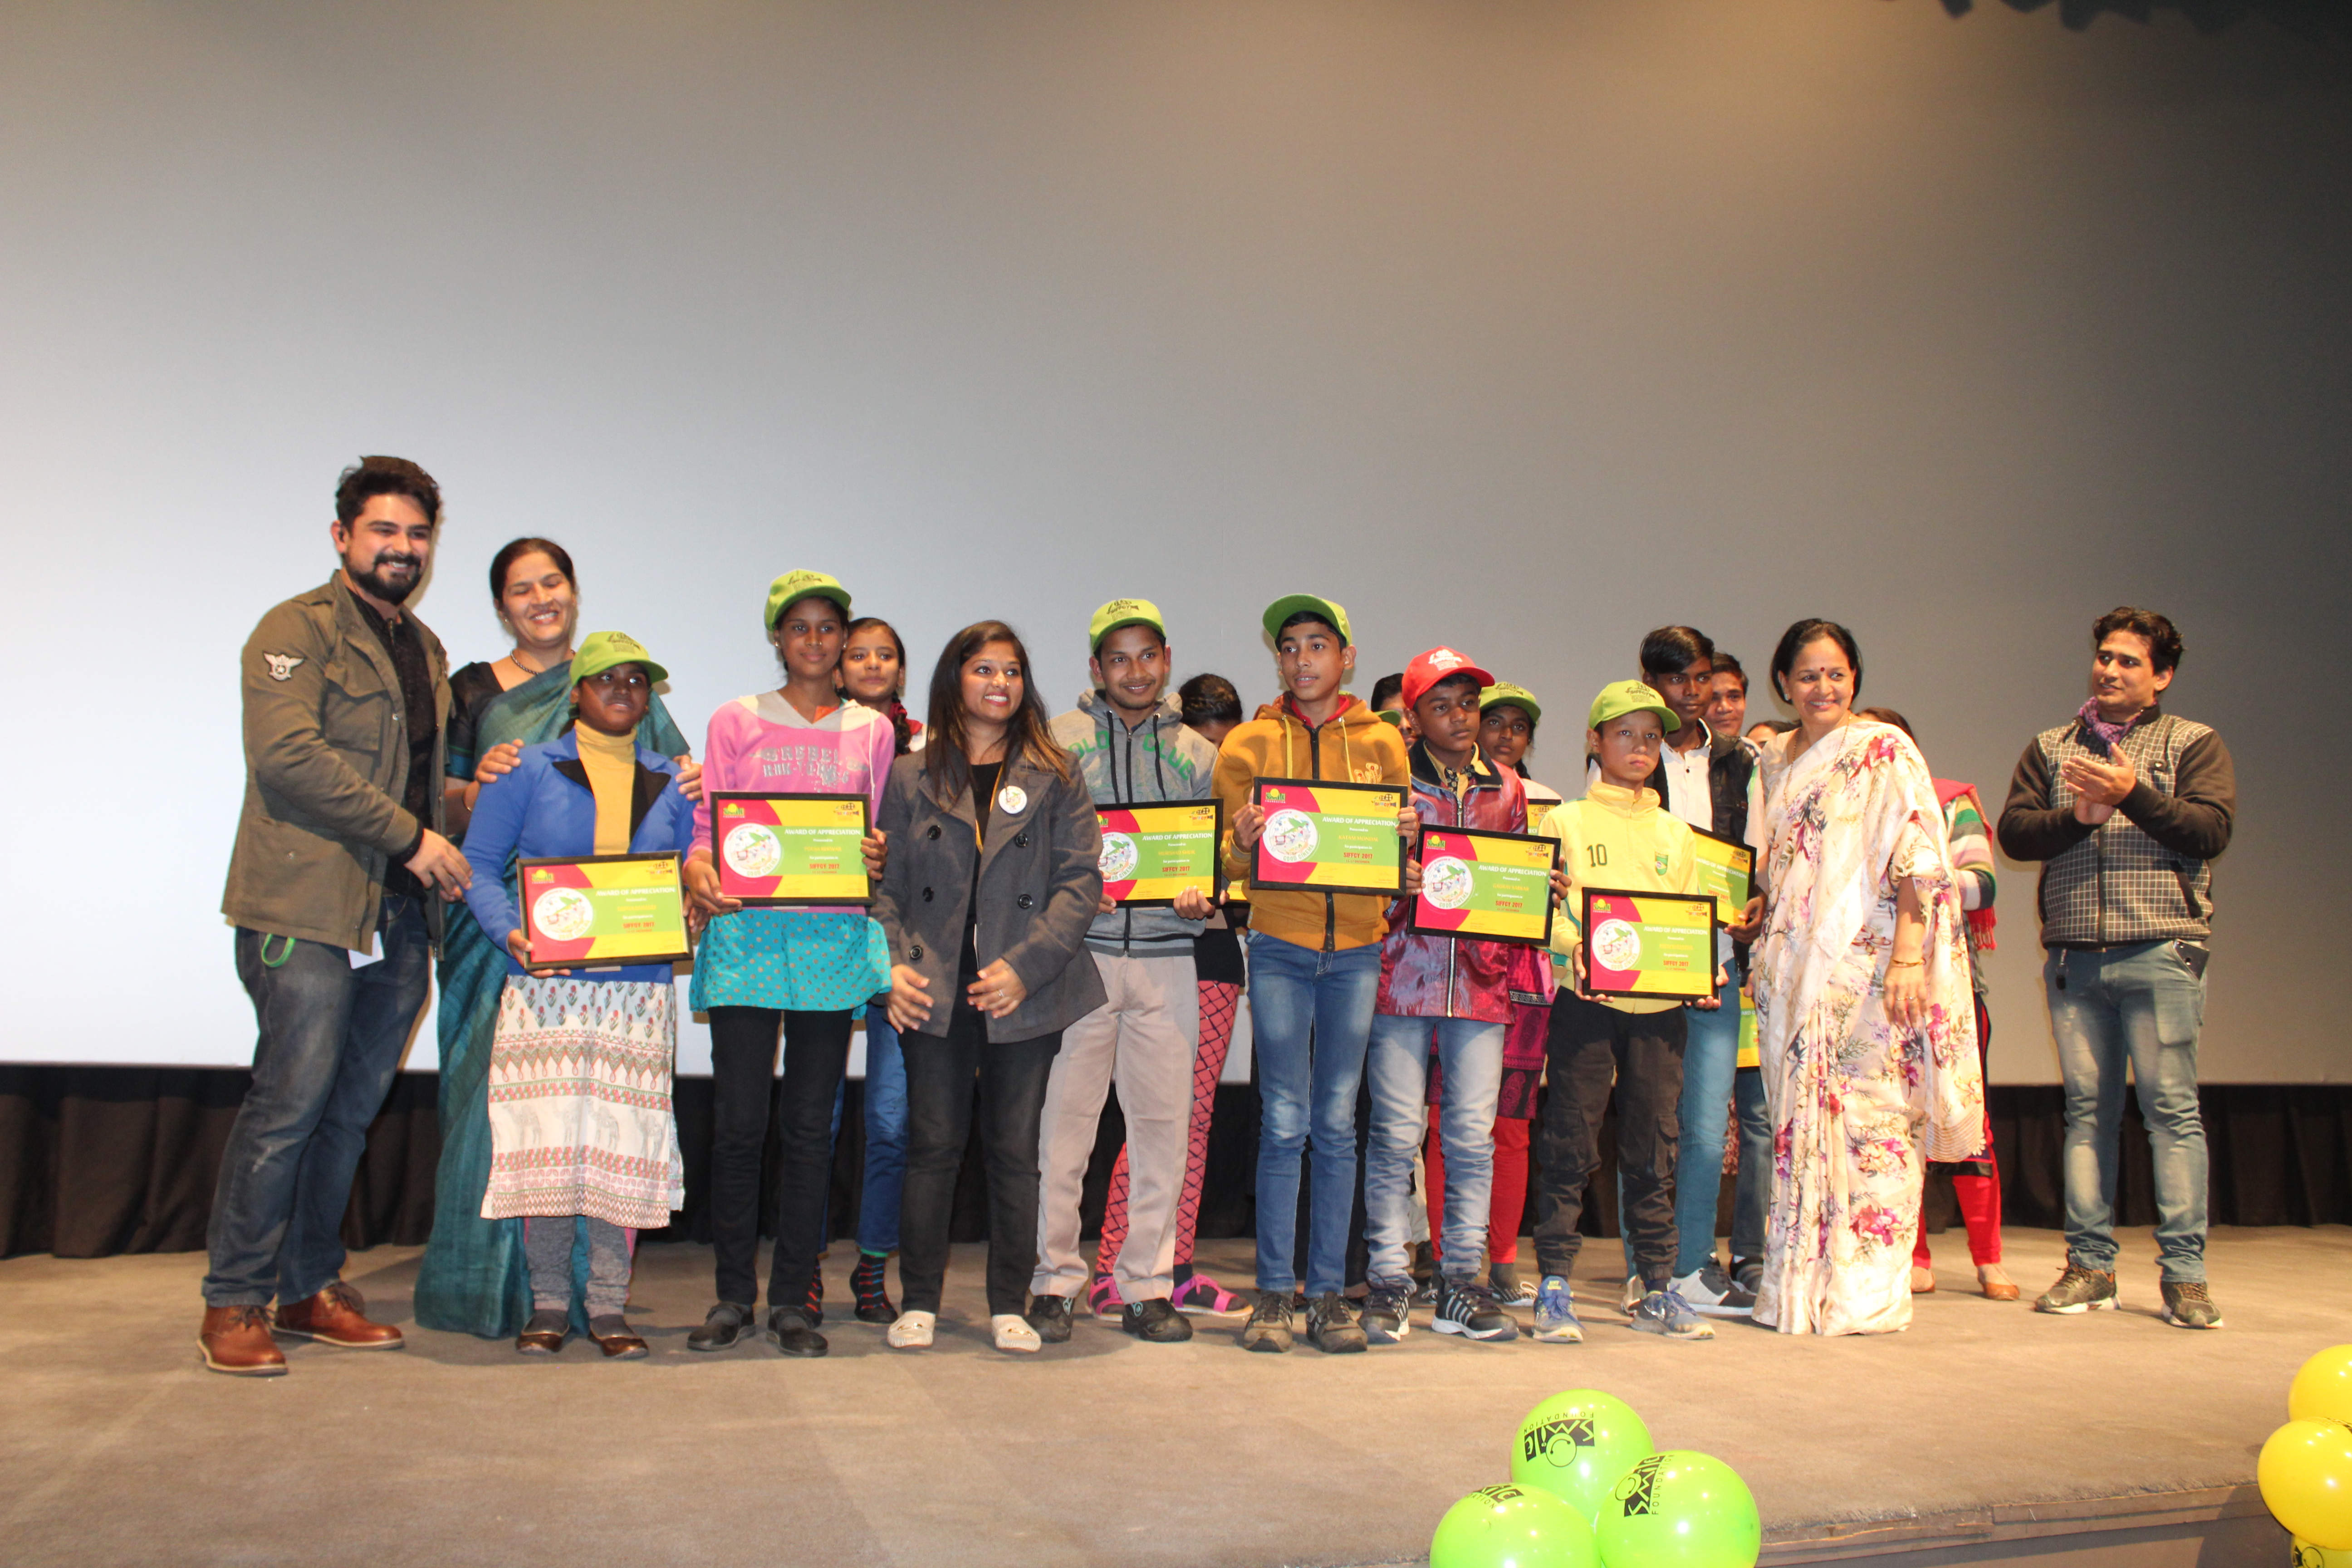 The Awards for SIFFCY 2017 Announced in a presence of Children & Youth along with Juries!